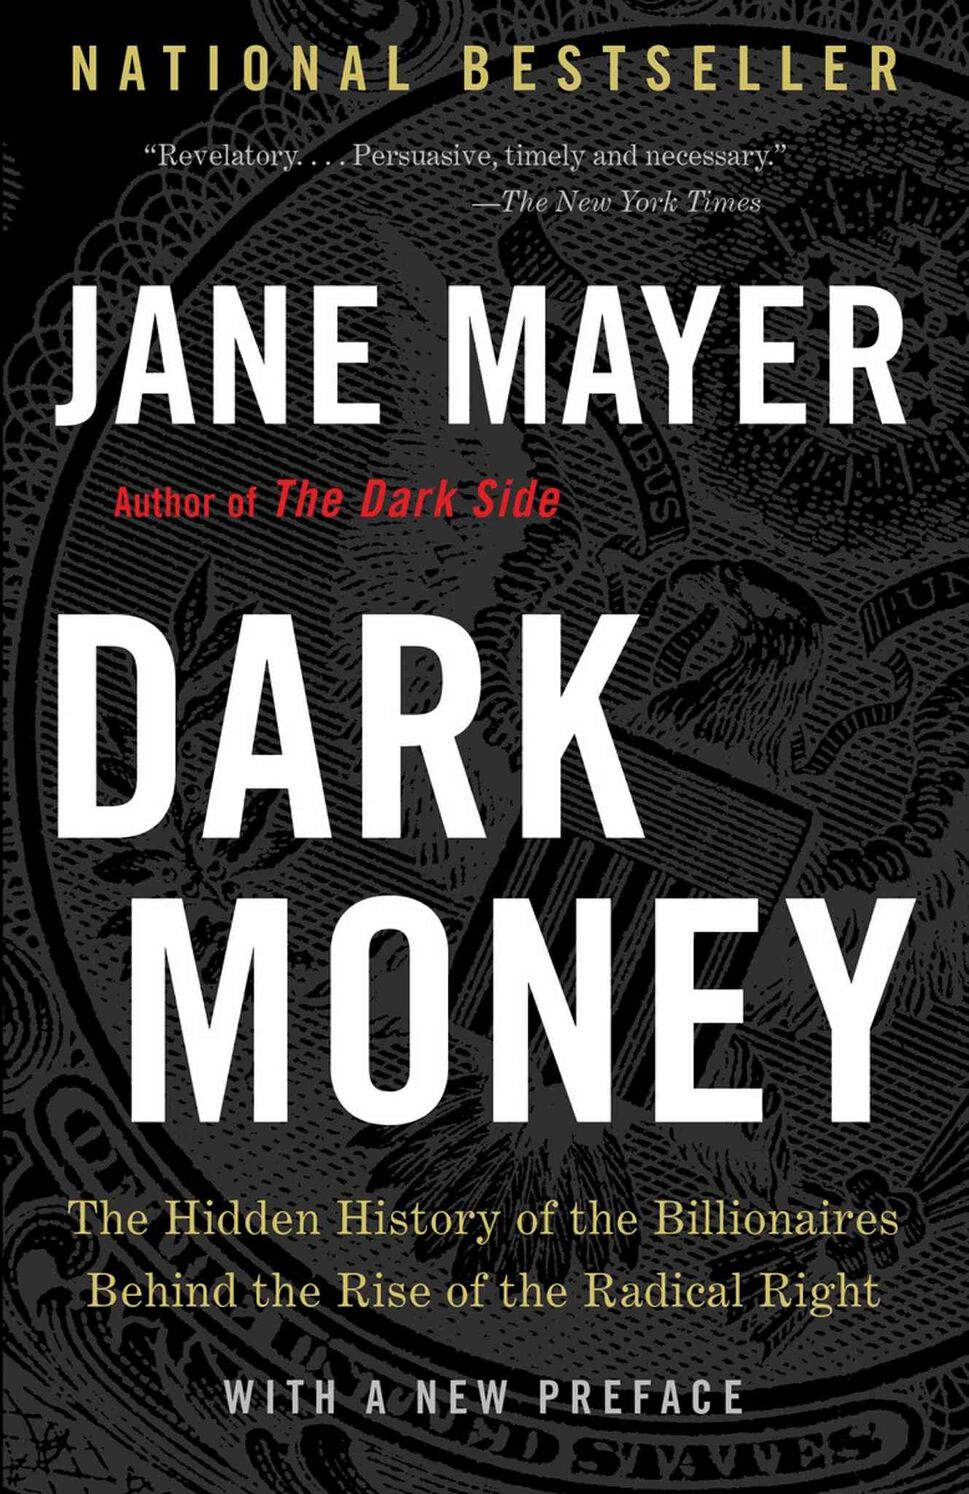 <h3>Dark Money: The Hidden History of the Billionaires Behind the Rise of the Radical Right</h3> <br/> By Jane Mayer <br/> <strong>In appalling detail, Jane Mayer tells how the ultra-rich have hijacked American democracy. Laws passed by corrupt politicians allow billionaires to funnel tax-exempt money through a shell game of charities, foundations and institutes to radical right-wing political organizations and candidates. The candidates propelled to power oppose universal health care and gun control, deny anthropomorphic climate change and seek to abolish taxes and regulations. Mayer's book is essential for Canadians concerned that the vaunted democracy of our next-door neighbour has been replaced by a government of, by and for the rich.</strong> <br/> — John K. Collins